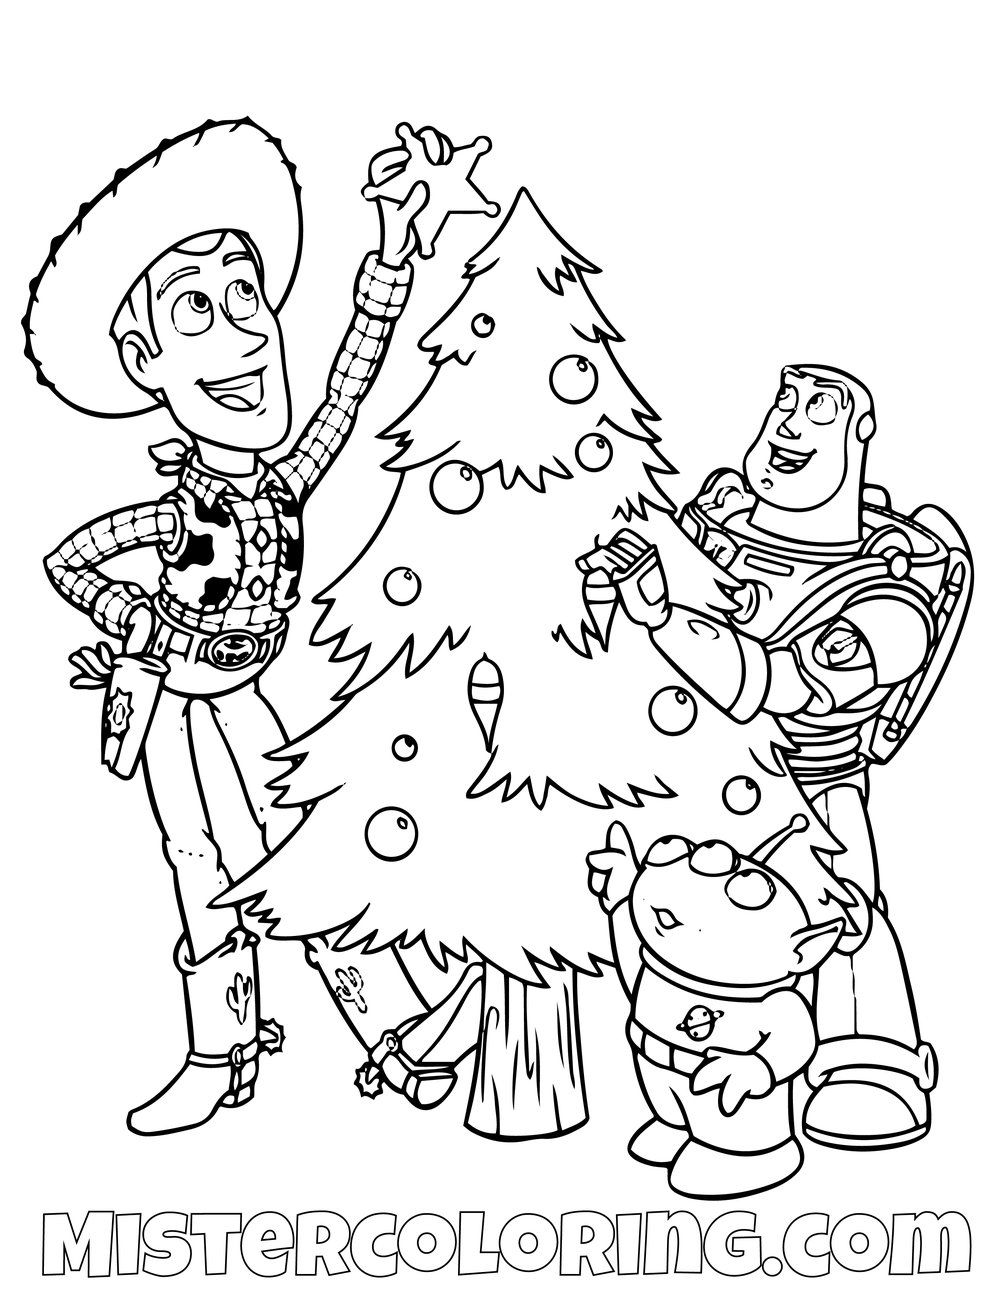 Sheriff Woody Alien And Buzz Lightyear With Christmas Tree Toy Story Coloring Page Toy Story Coloring Pages Christmas Coloring Pages Christmas Toy Story